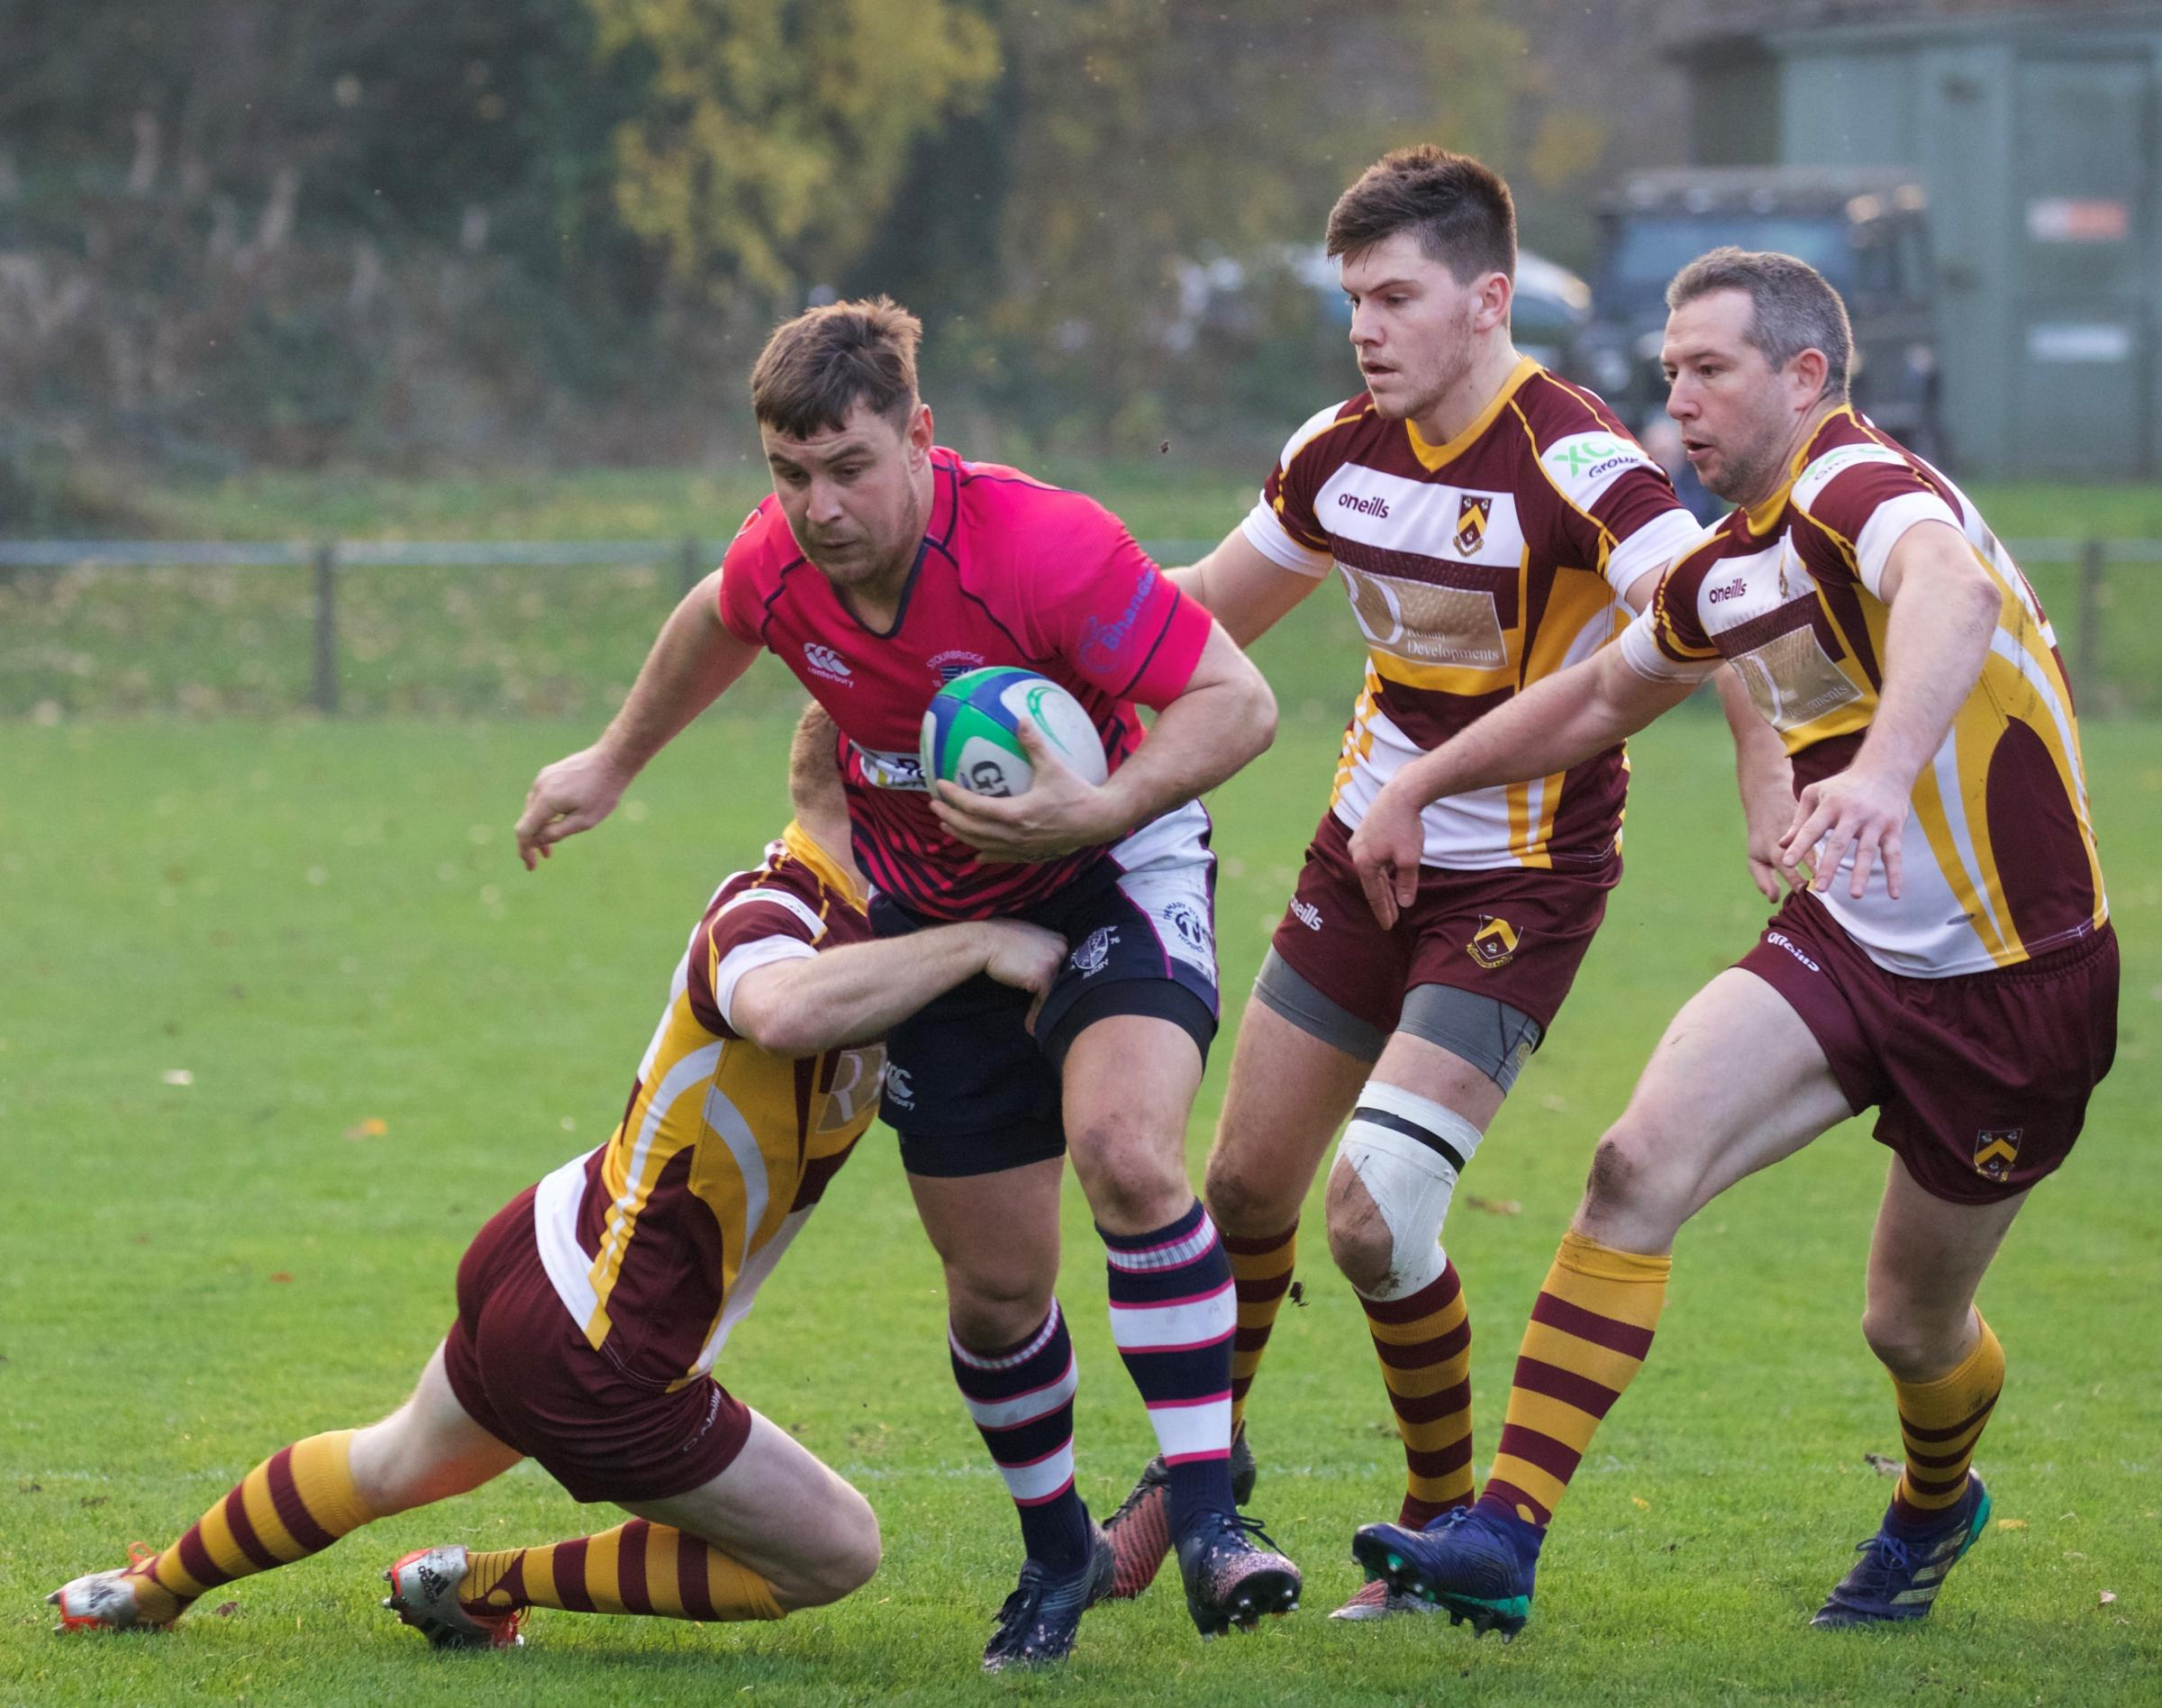 George Morgan carries for Stour. Photo by Andy Cook.